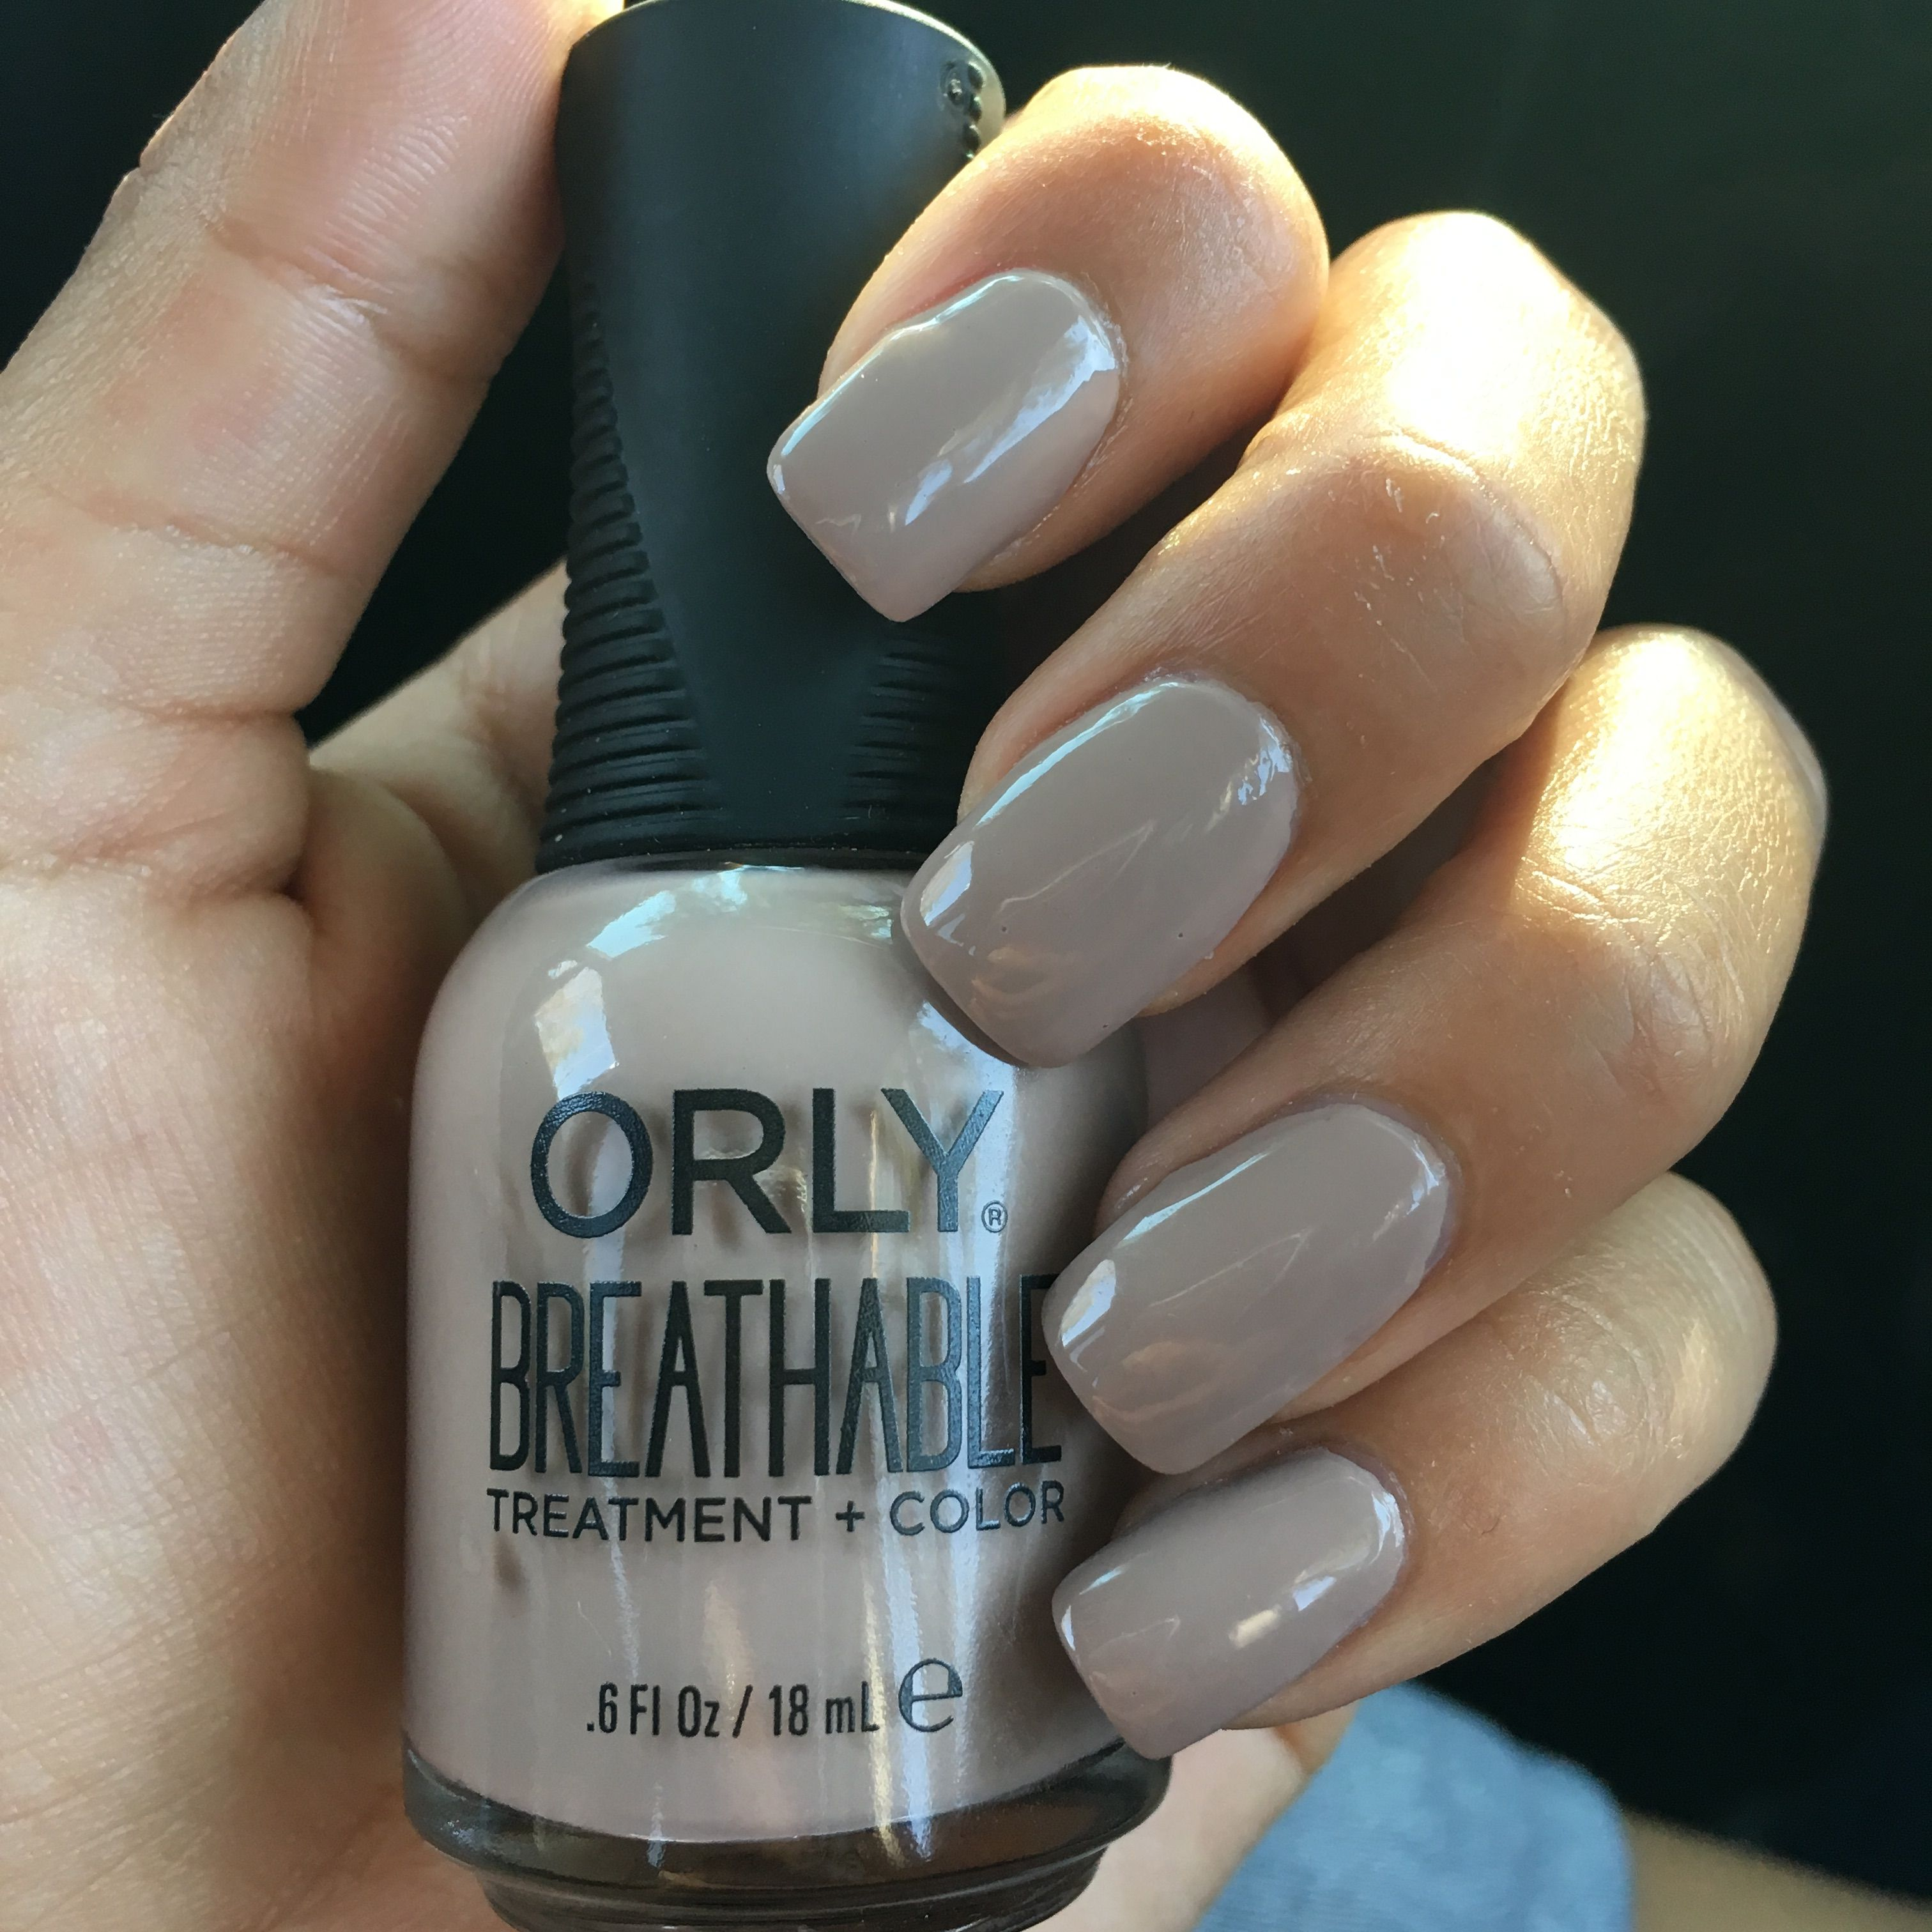 Orly Breathable Nail Polish Down To Earth Nail